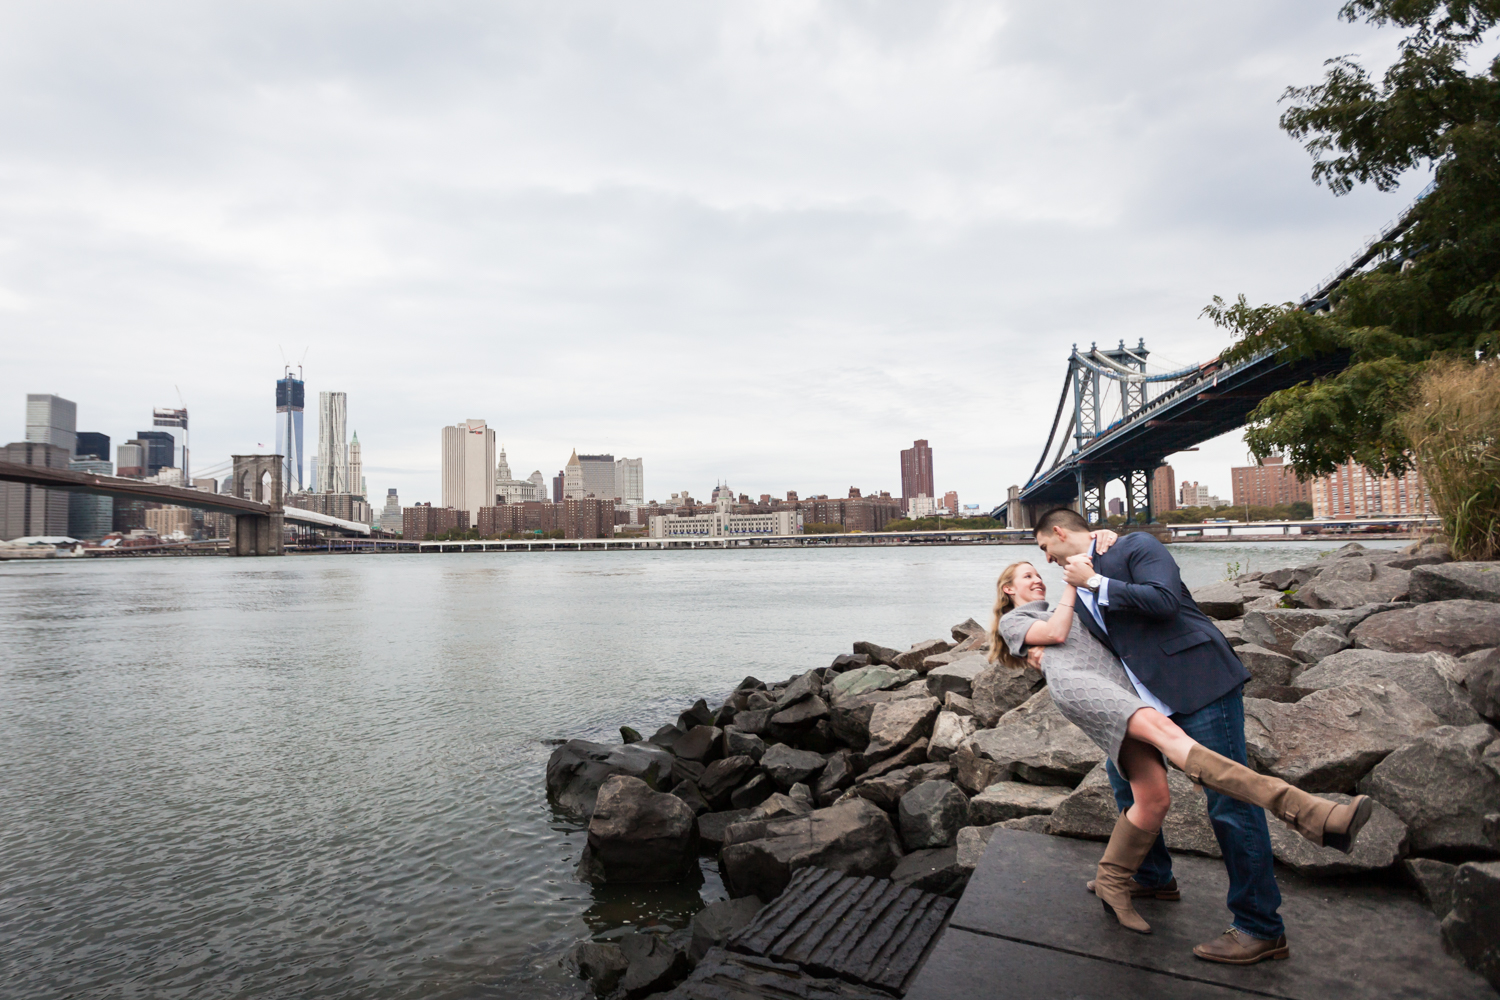 Man dipping woman while dancing with East River and bridges in background